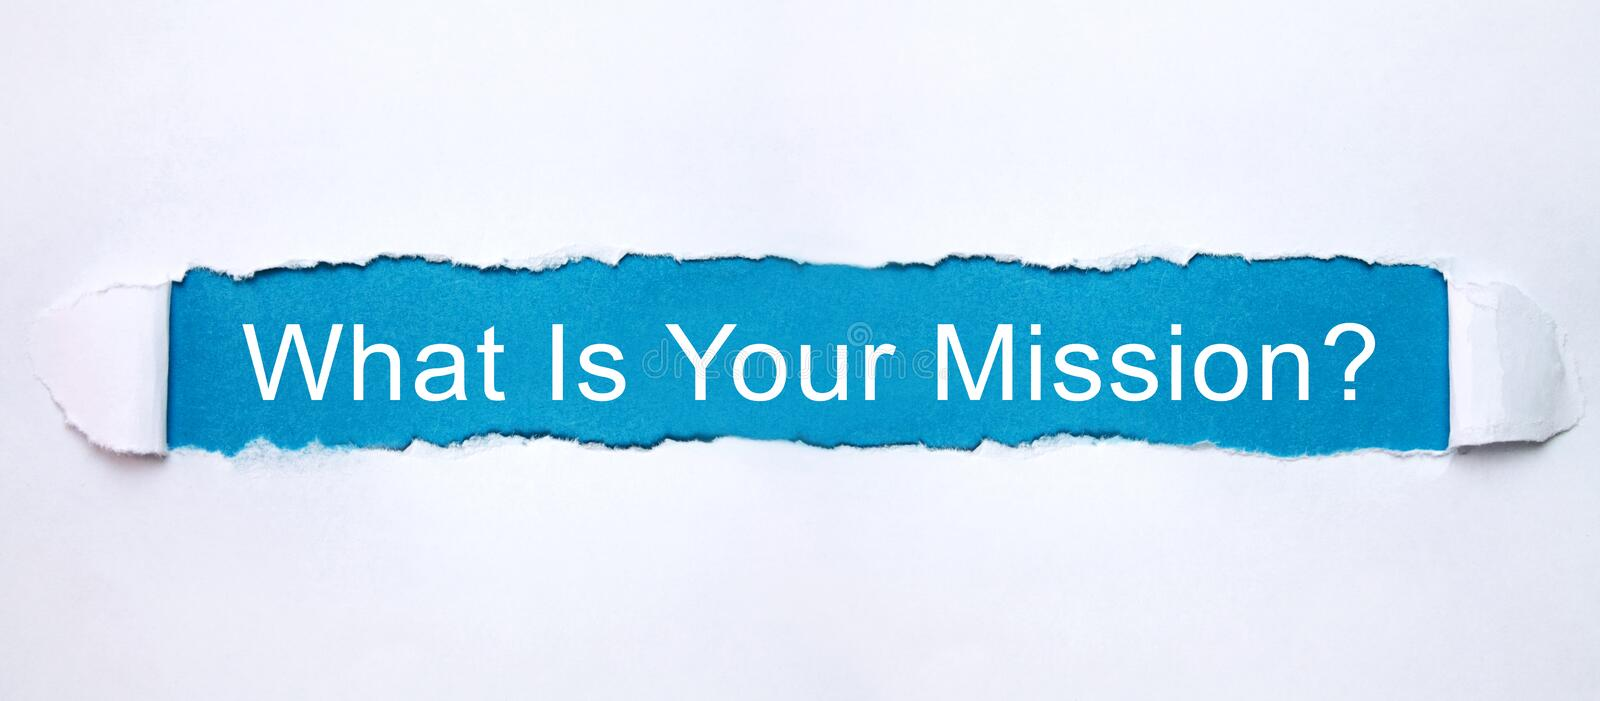 What Is Your Mission? text in torn paper royalty free stock image